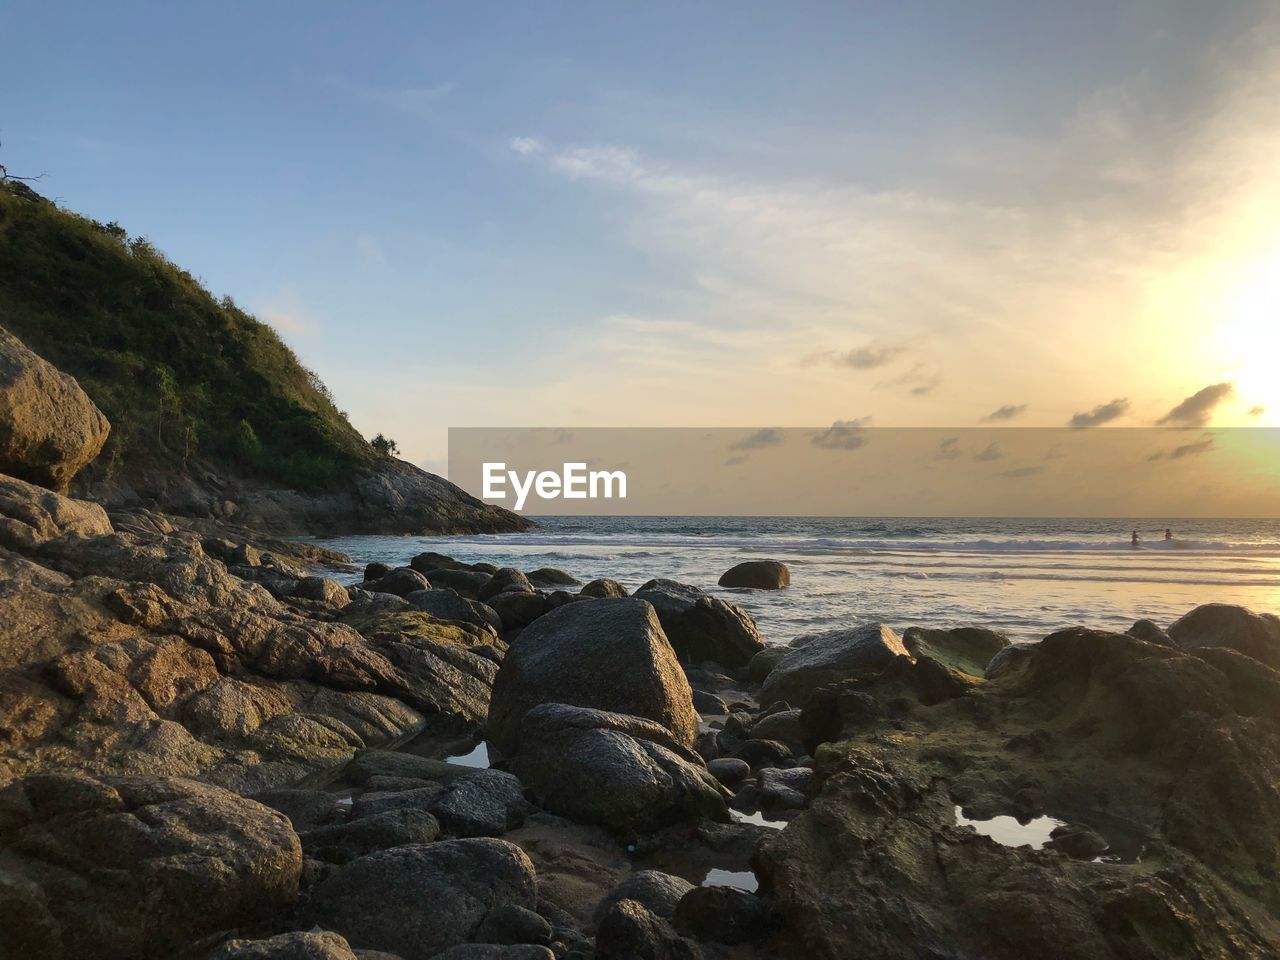 sea, water, sky, rock, solid, horizon over water, beauty in nature, scenics - nature, rock - object, horizon, beach, land, tranquility, tranquil scene, cloud - sky, nature, no people, sunset, idyllic, outdoors, rocky coastline